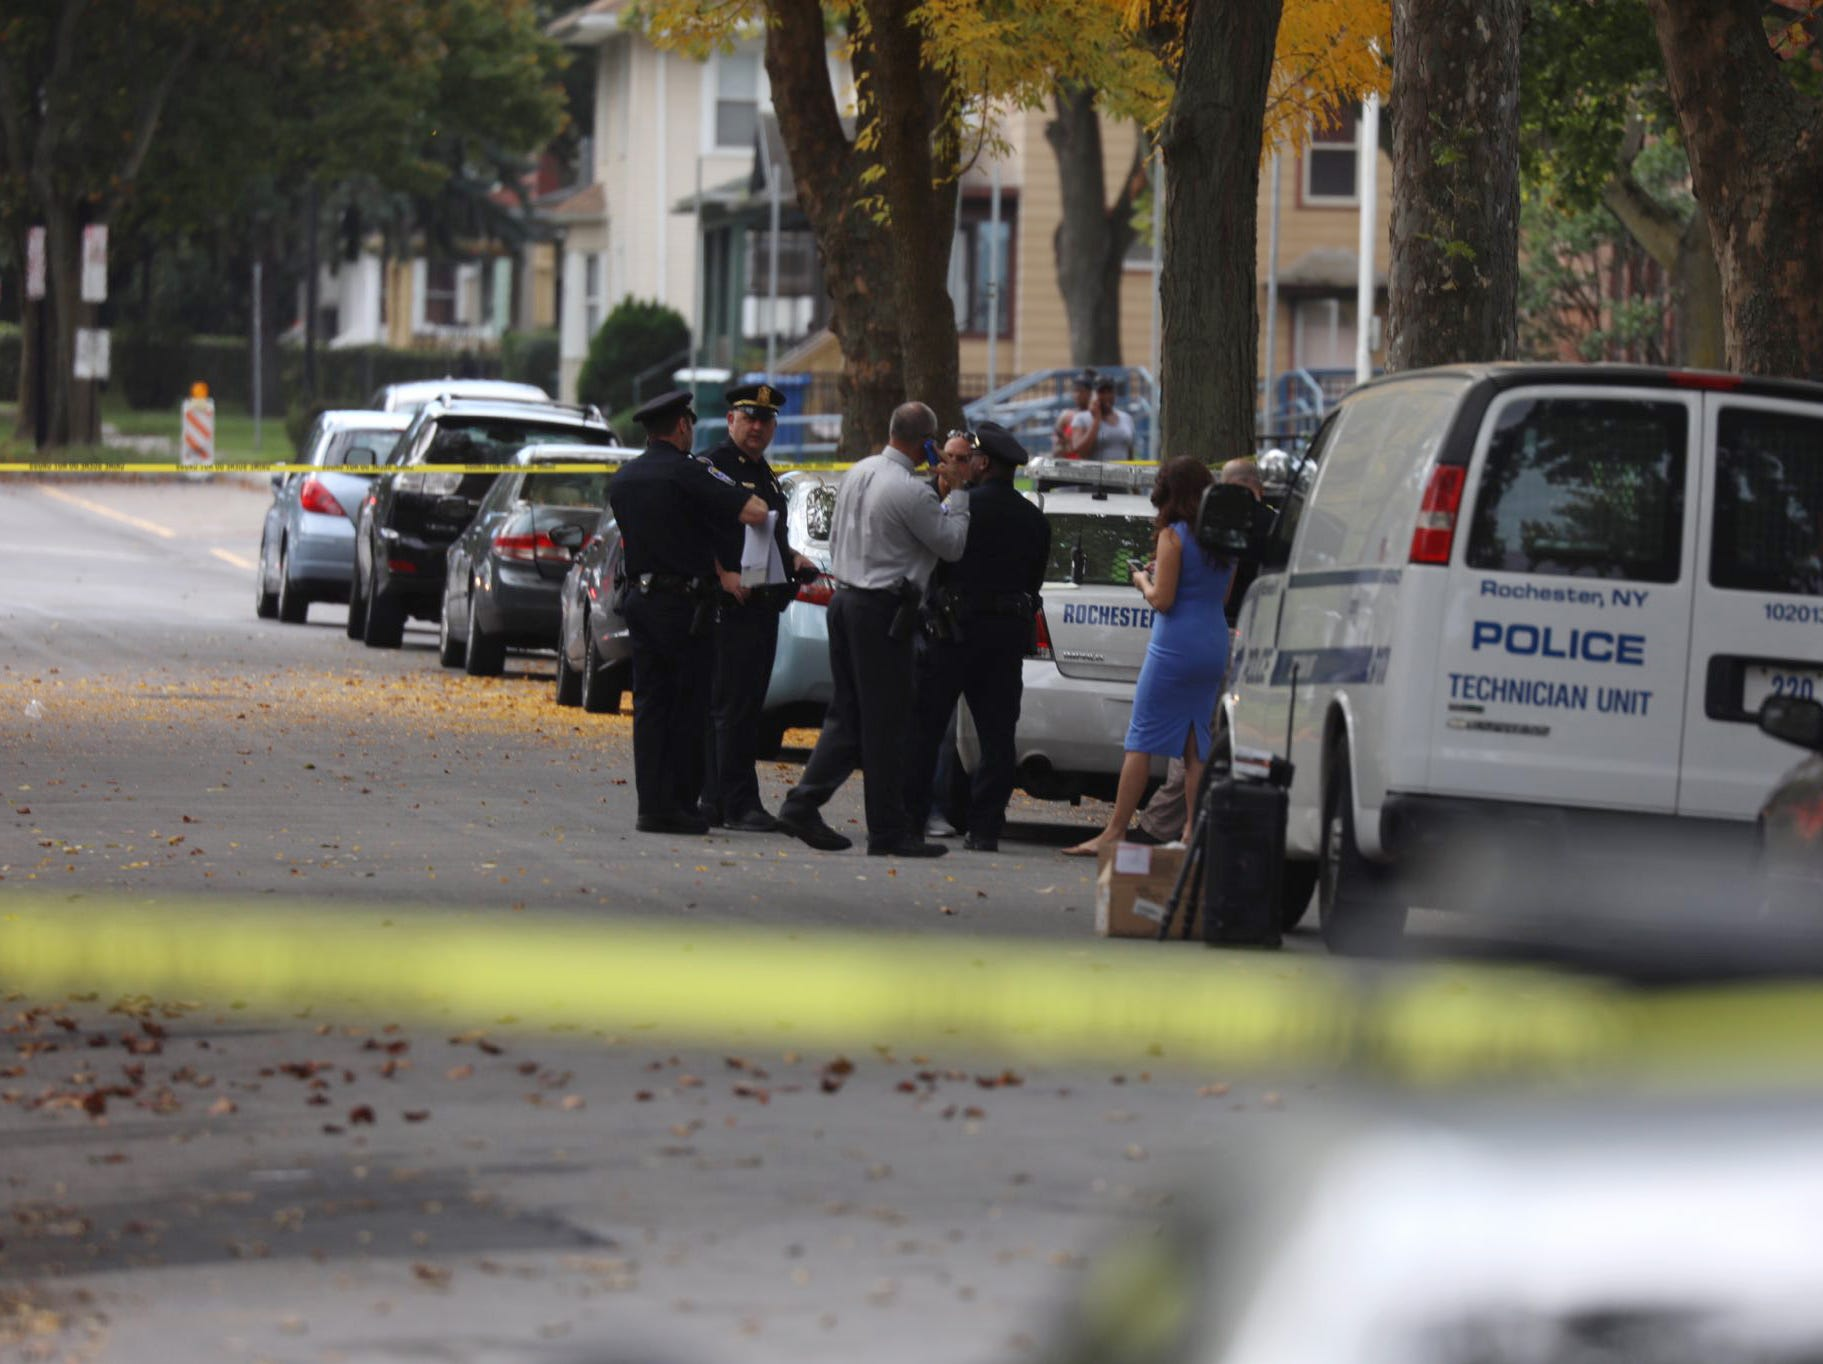 Rochester Police are investigating the report of a shooting on the city's west side Wednesday morning.